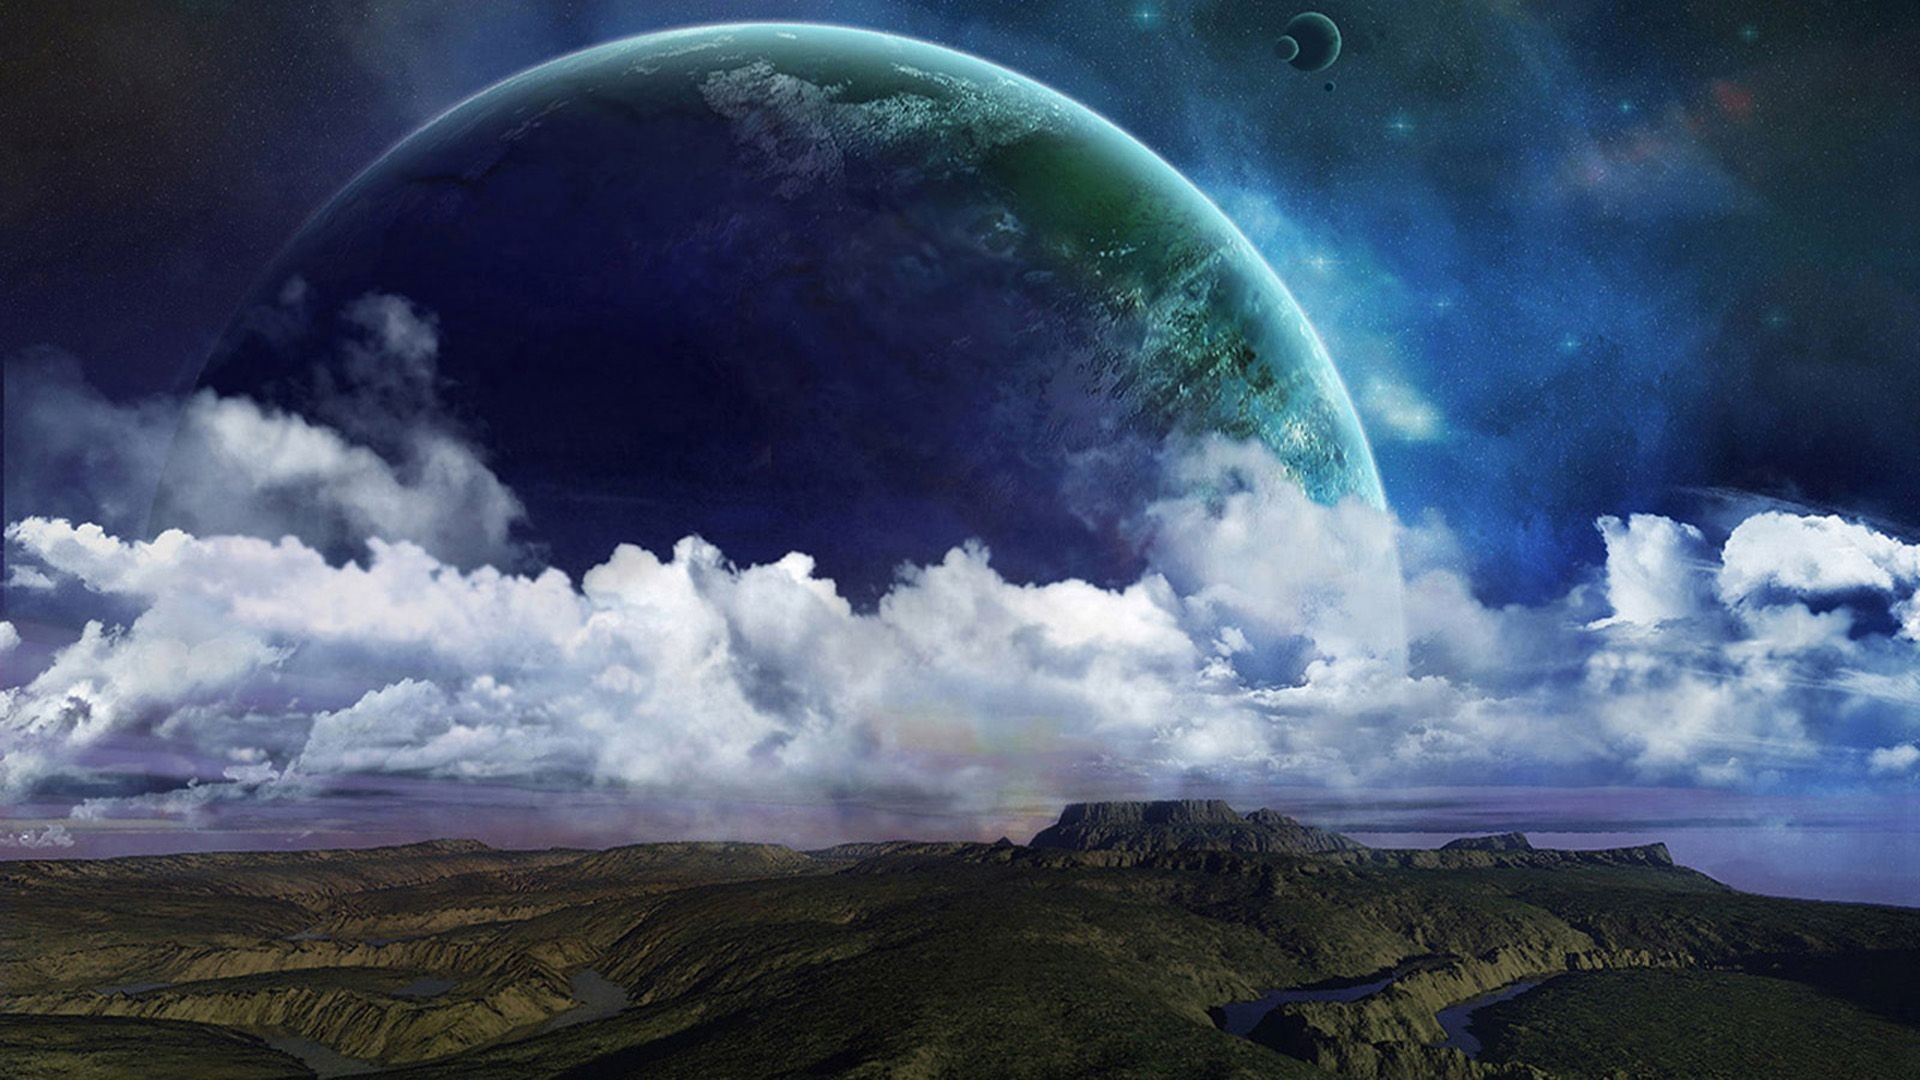 Space HD Wallpapers 2 | Space HD Wallpapers | Pinterest | Hd wallpaper,  Wallpaper and Wallpaper backgrounds